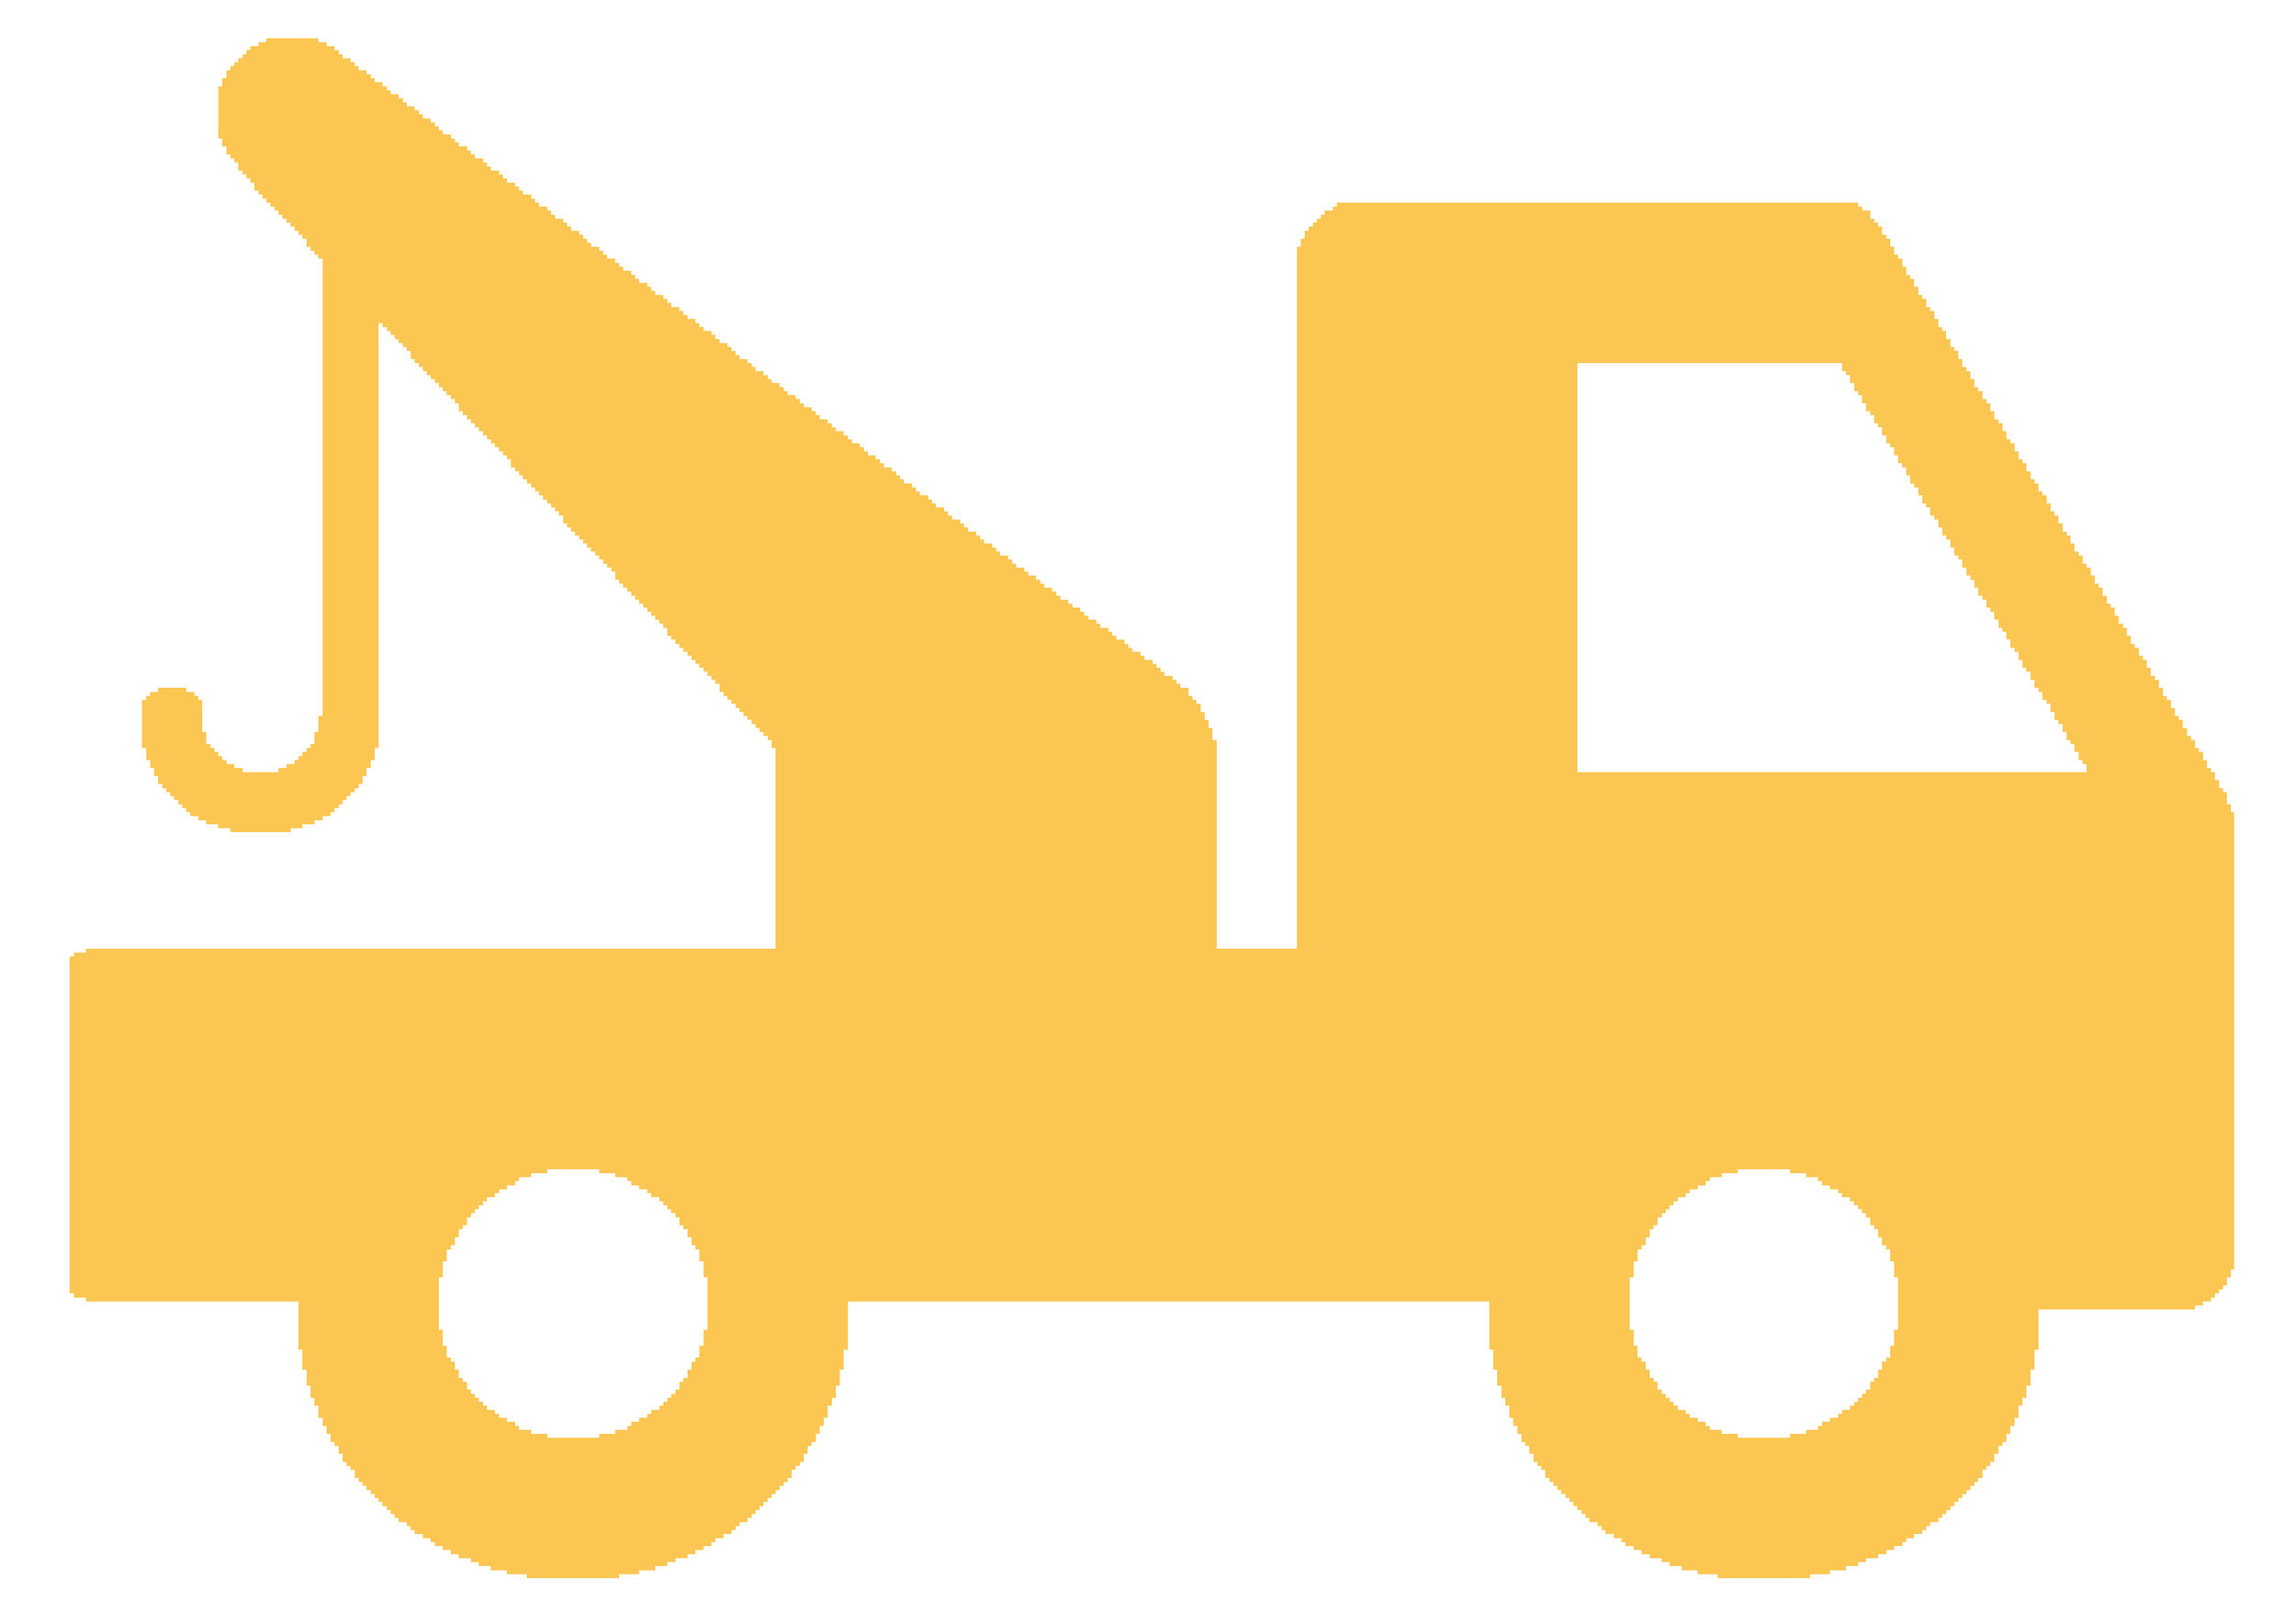 More than 90 specialist recovery vehicles including light weight recovery vehicles for cars, motorcycles & vans and heavy recovery vehicles for buses and commercial vehicles up to 80T. -